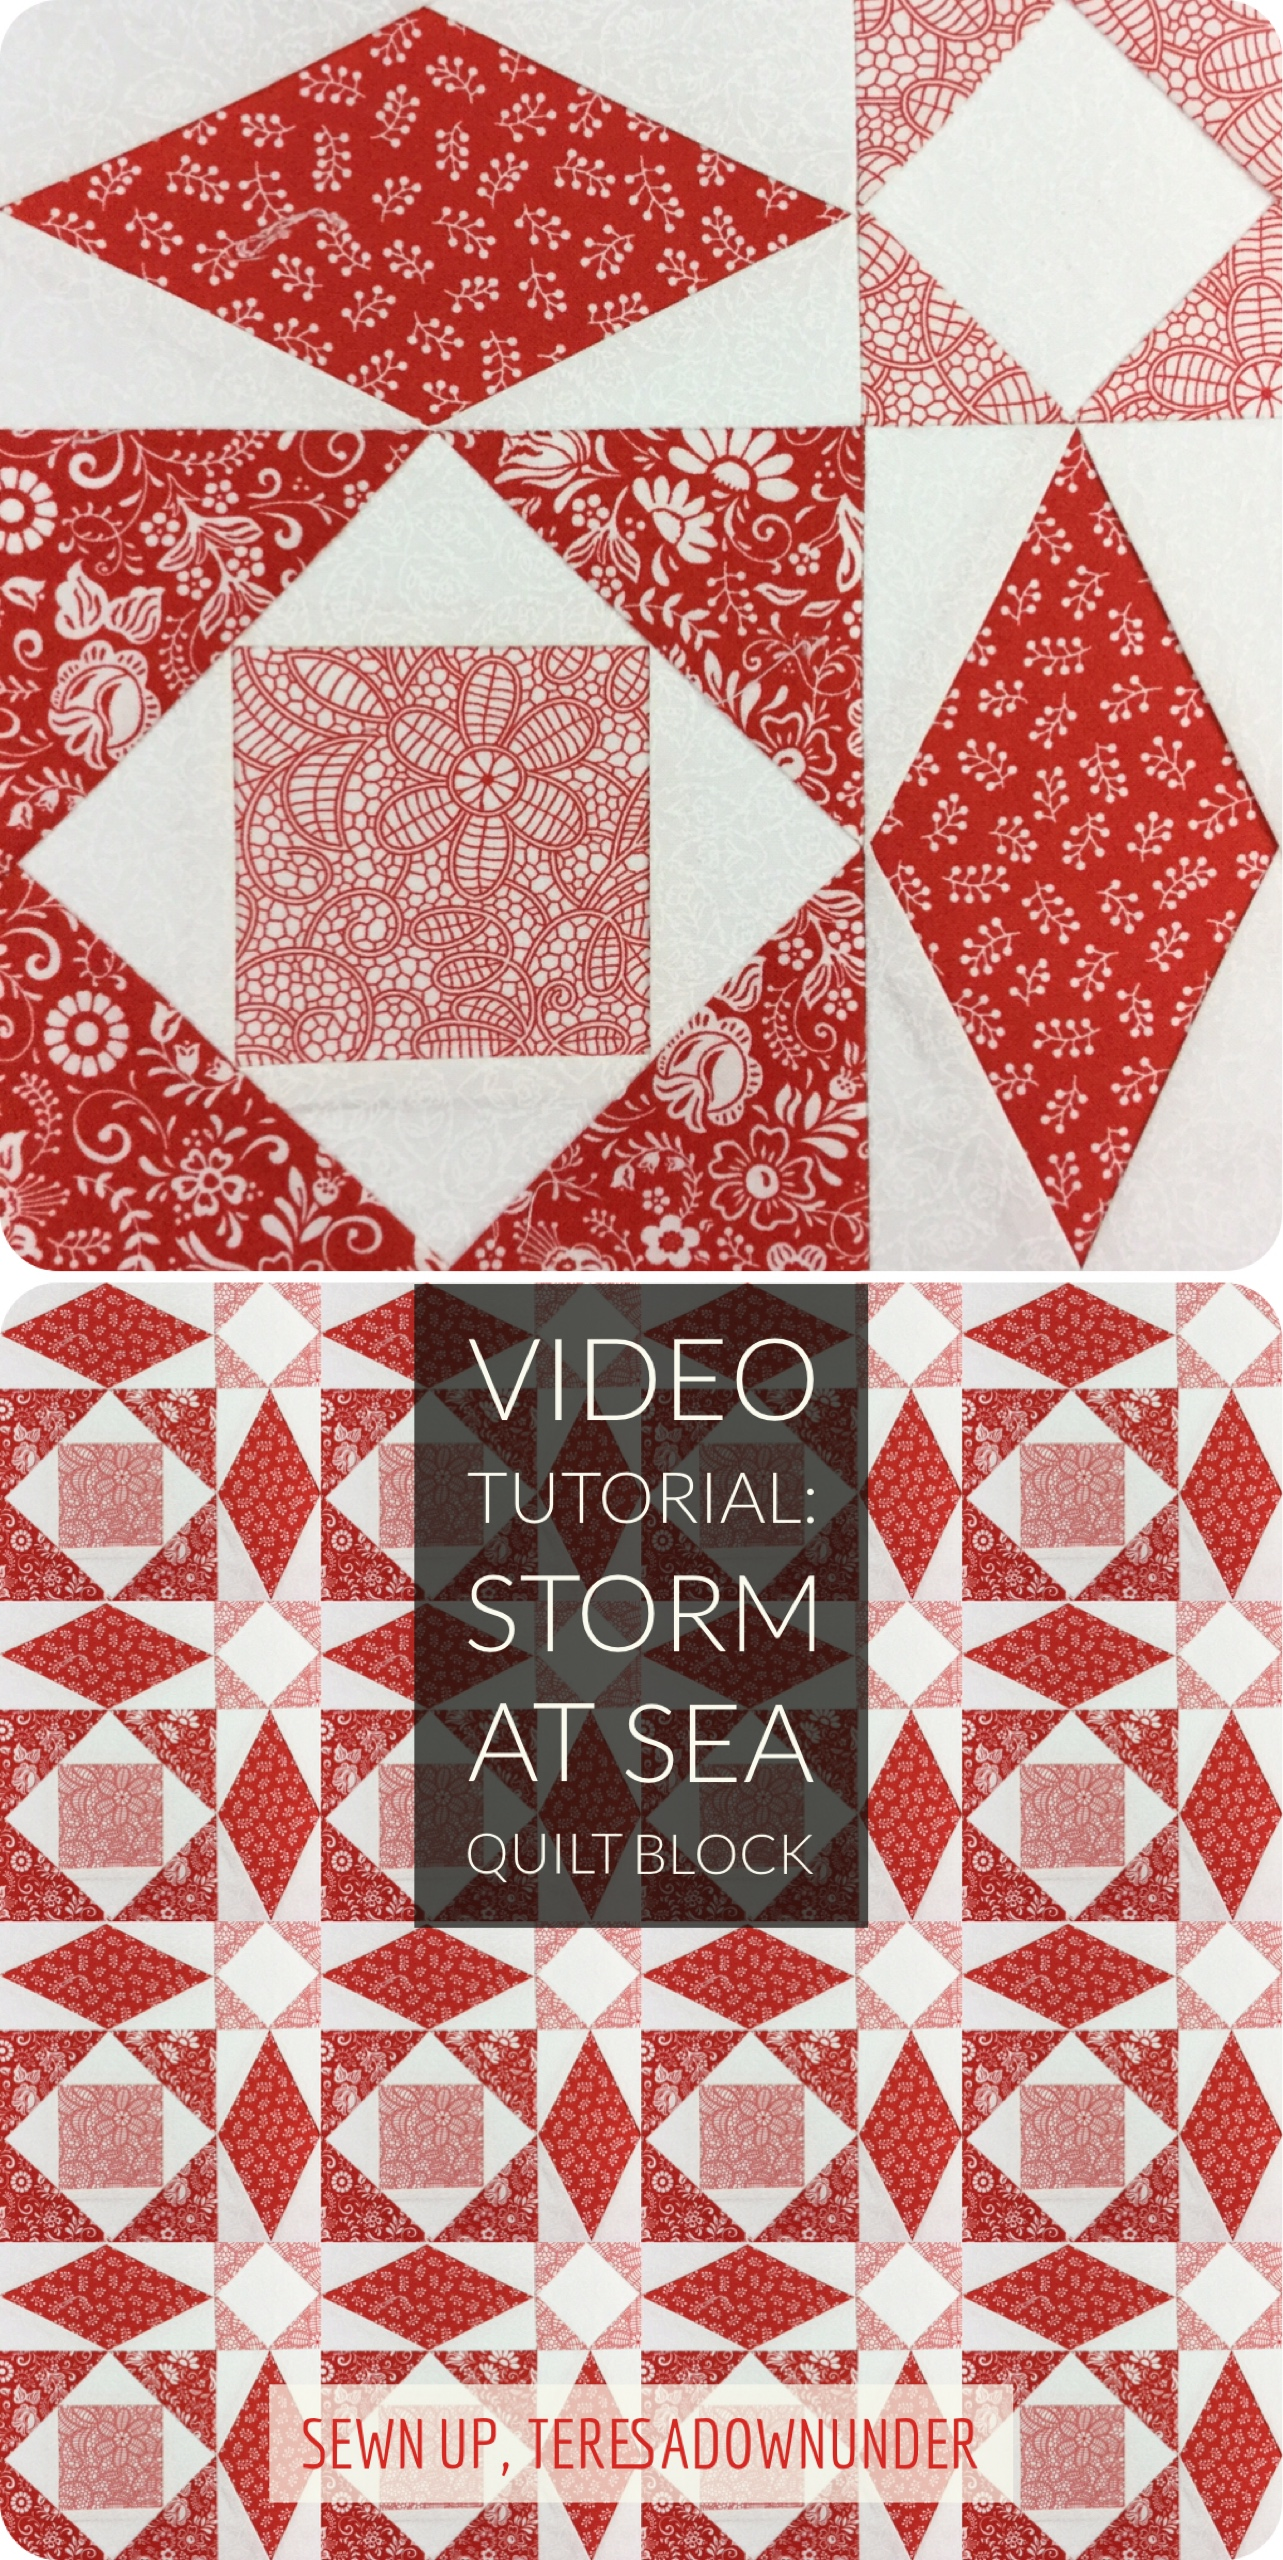 storm at sea quilt template - video tutorial storm at sea quilt block version 1 sewn up